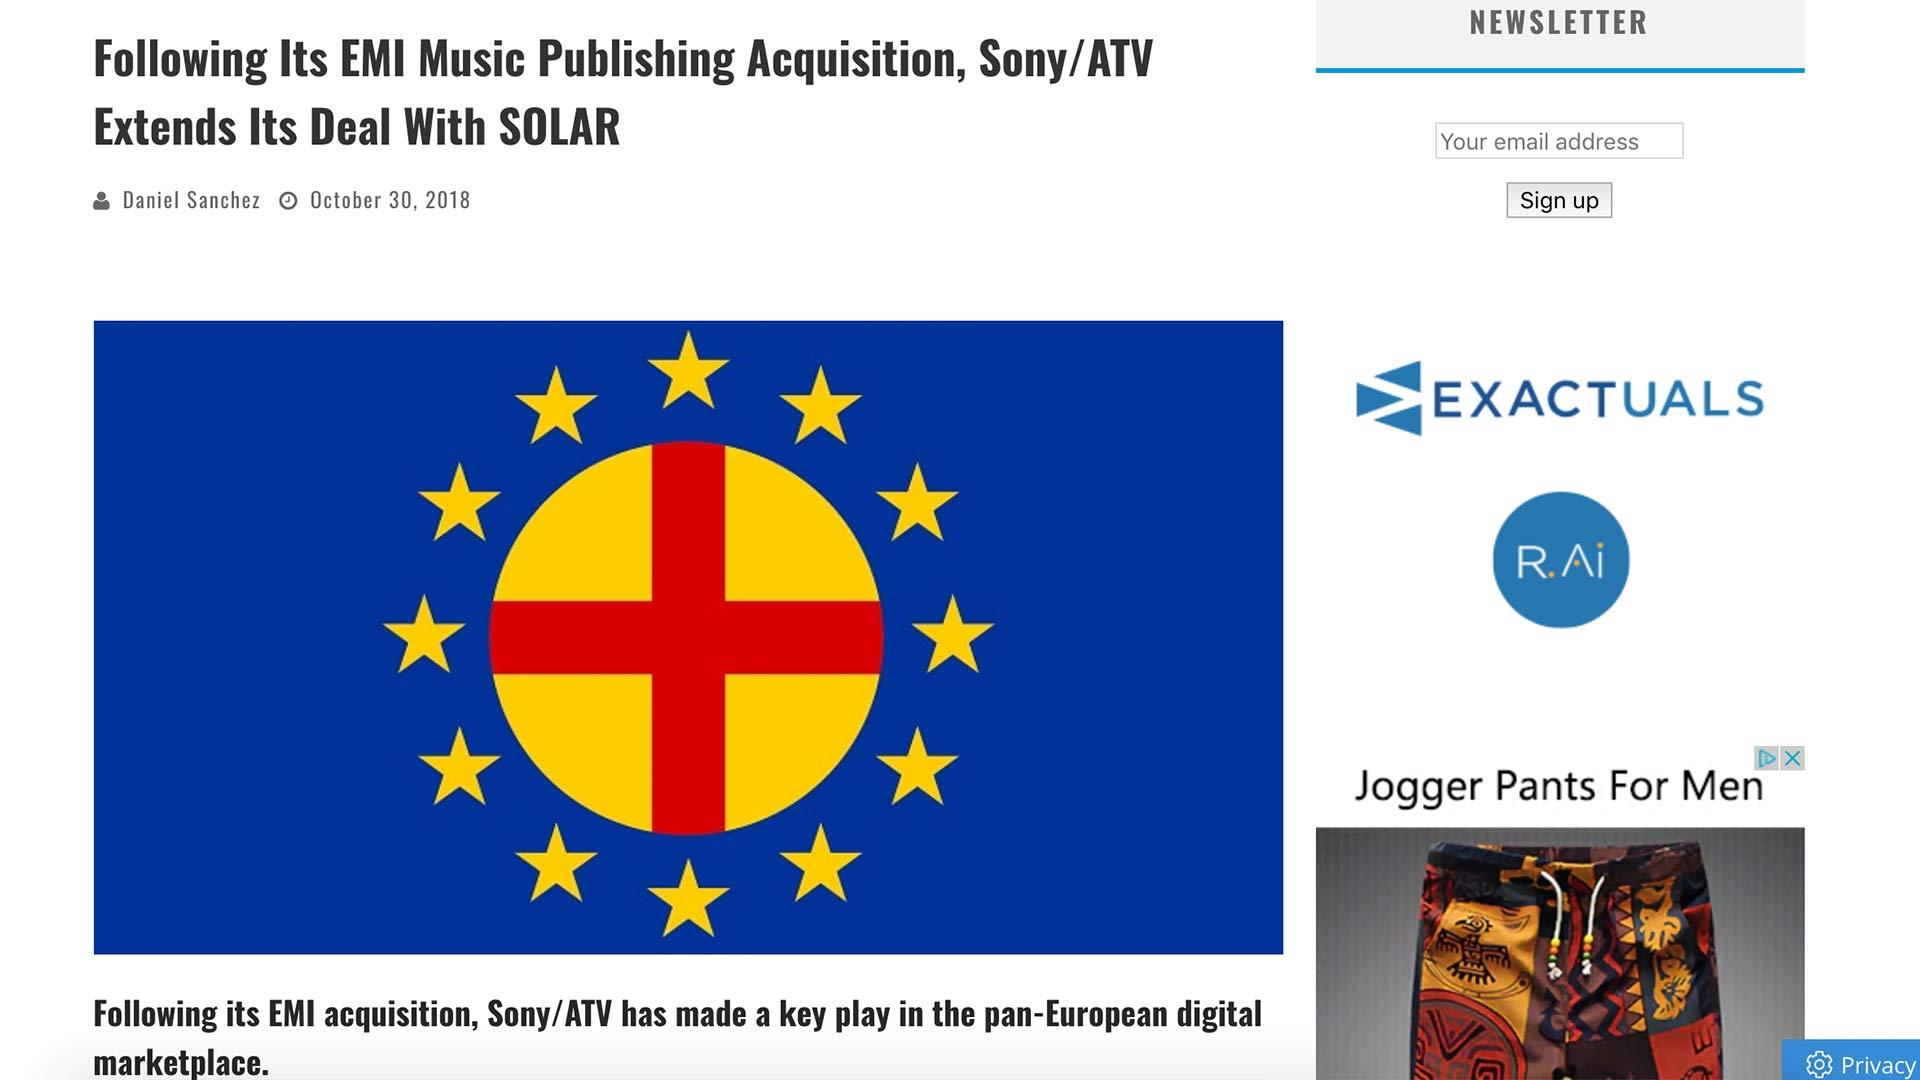 Fairness Rocks News Following Its EMI Music Publishing Acquisition, Sony/ATV Extends Its Deal With SOLAR